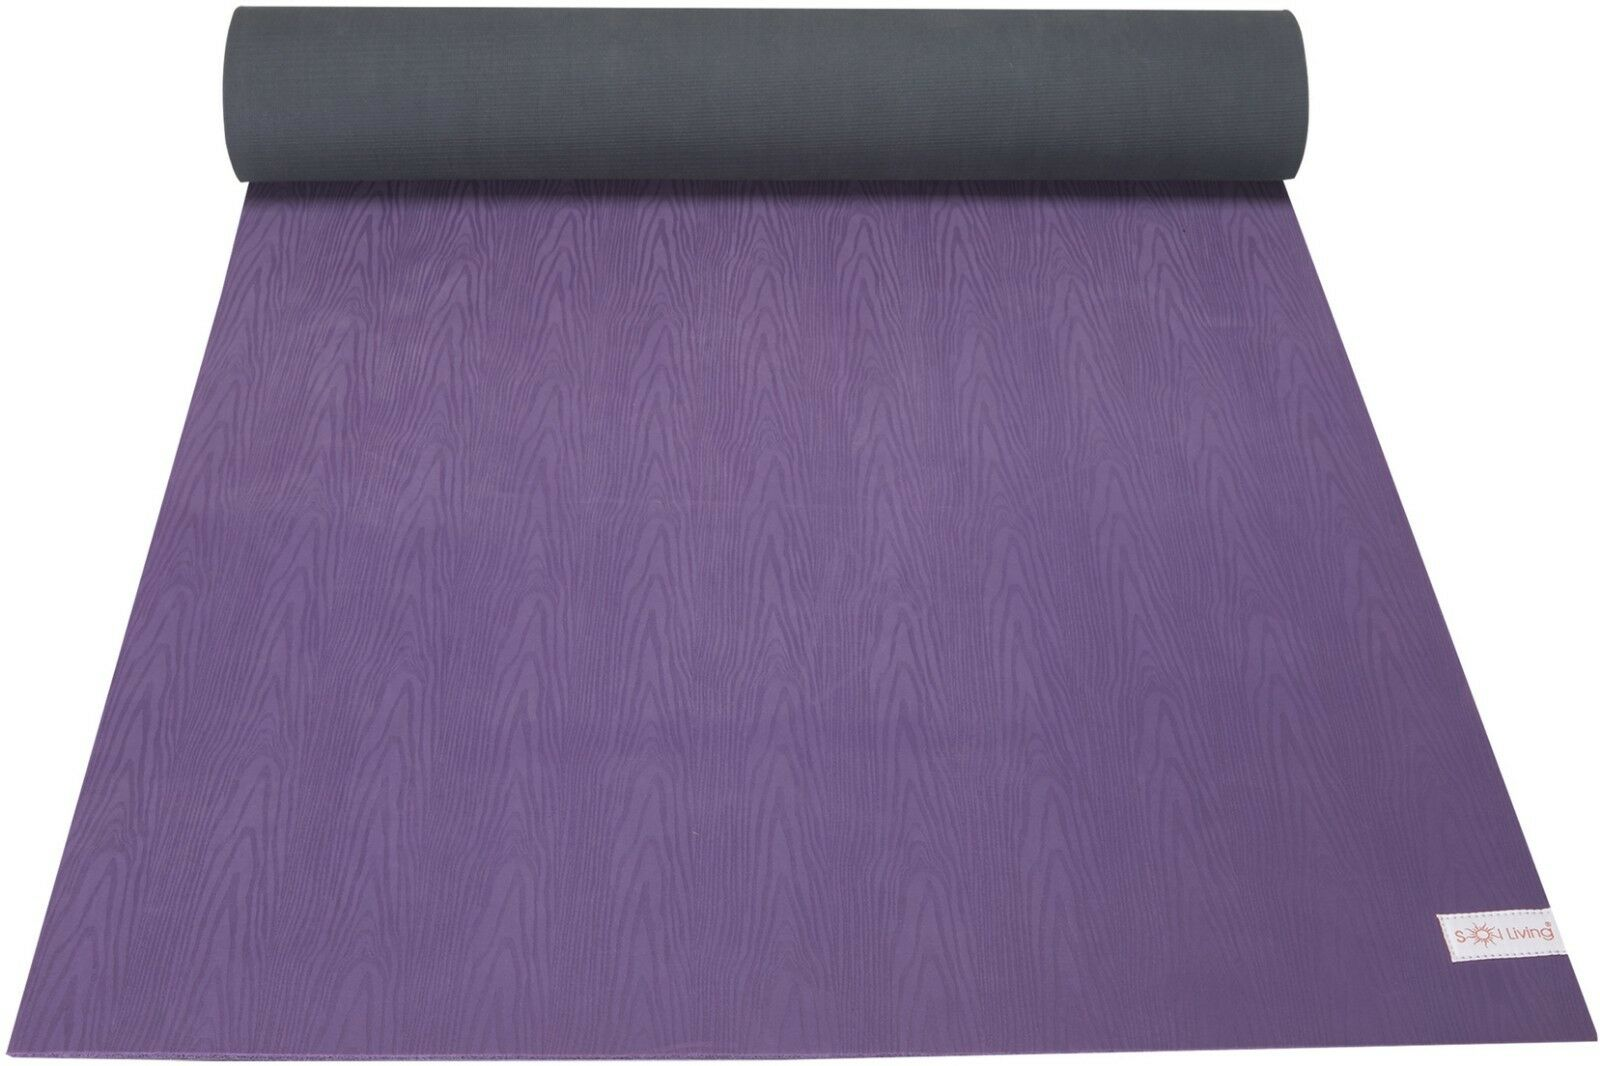 Sturdy Rubber 24 x 72 Inches Non slip Fitness Gym & Exercise Yoga Mats